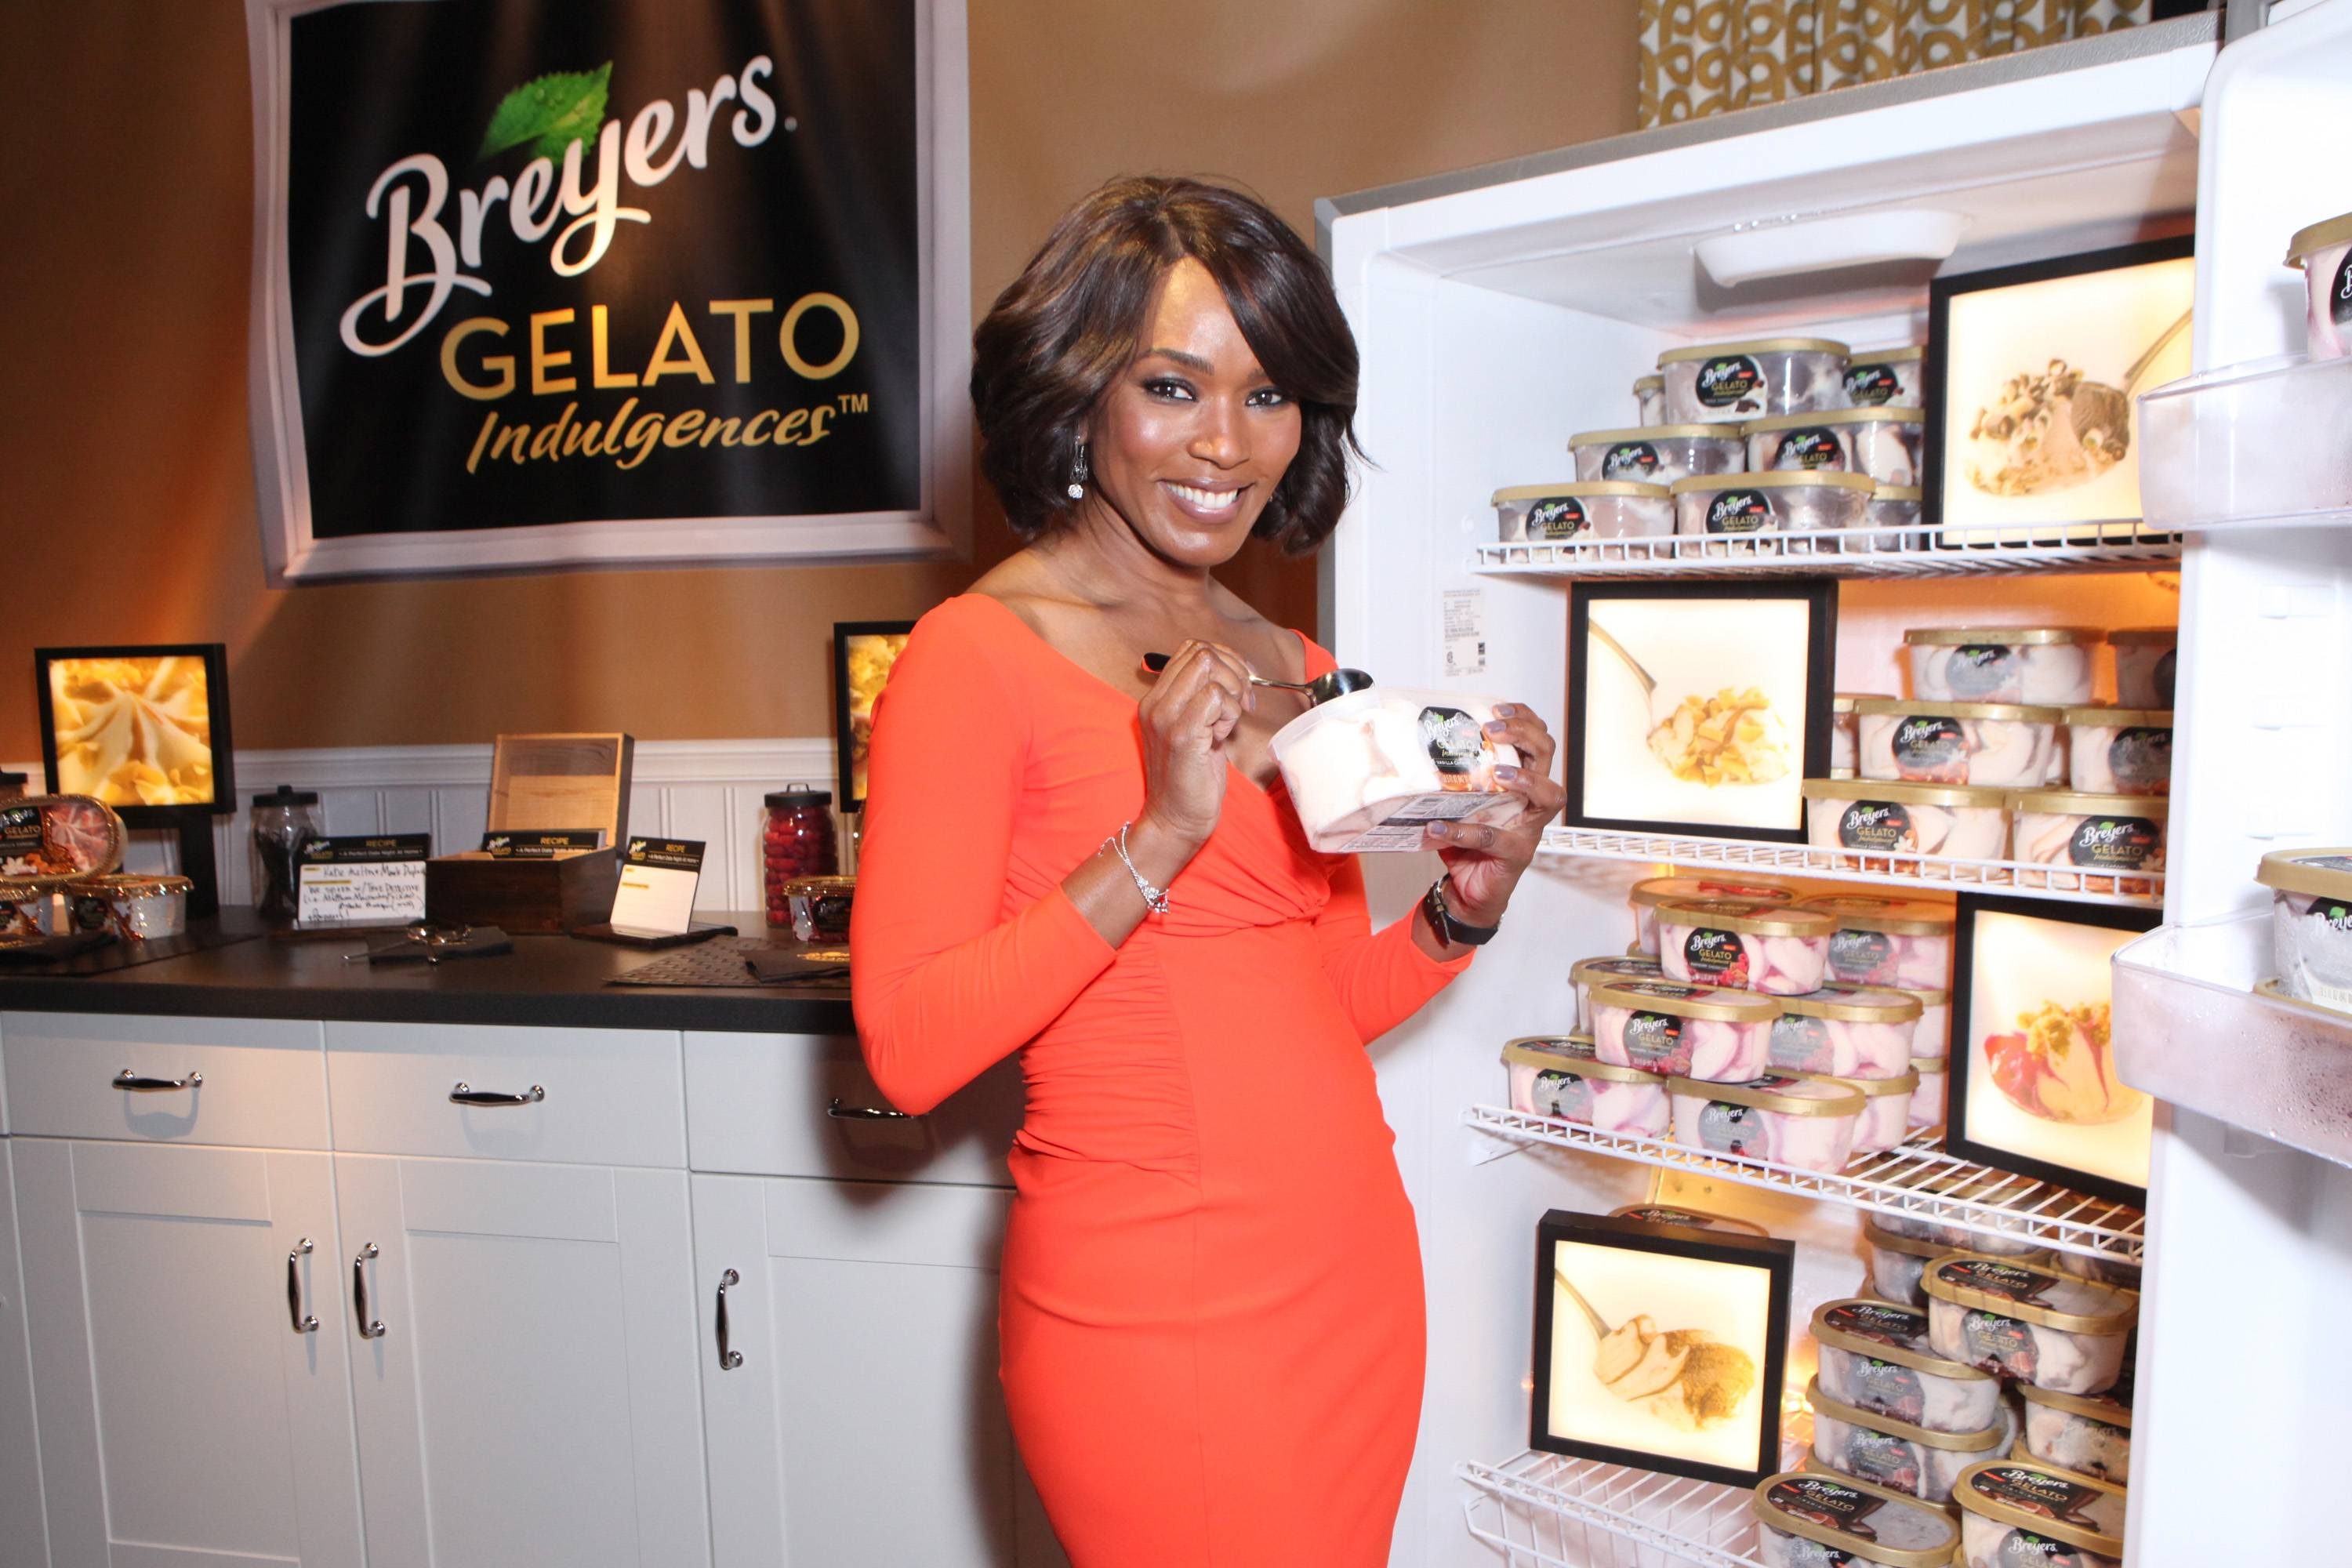 Breyers Gelato Indulgences In The Official Presenter Gift Lounge at The 2014 Film Independent Spirit Awards Produced by On 3 Productions